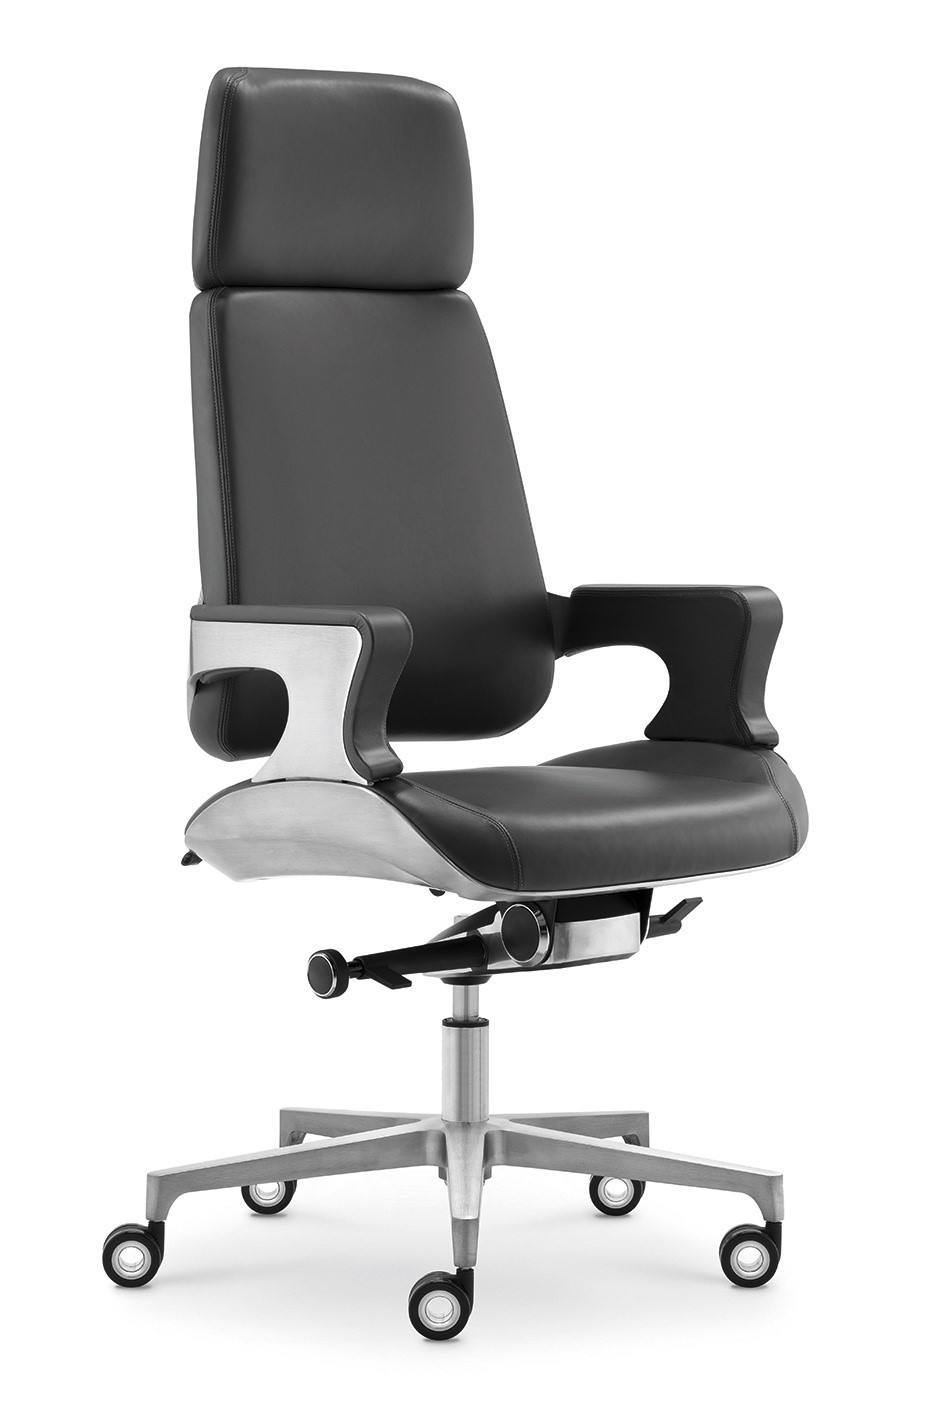 news-High-grade Ergonomic Chairs for Executive Officers-Gojo furniure-img-3